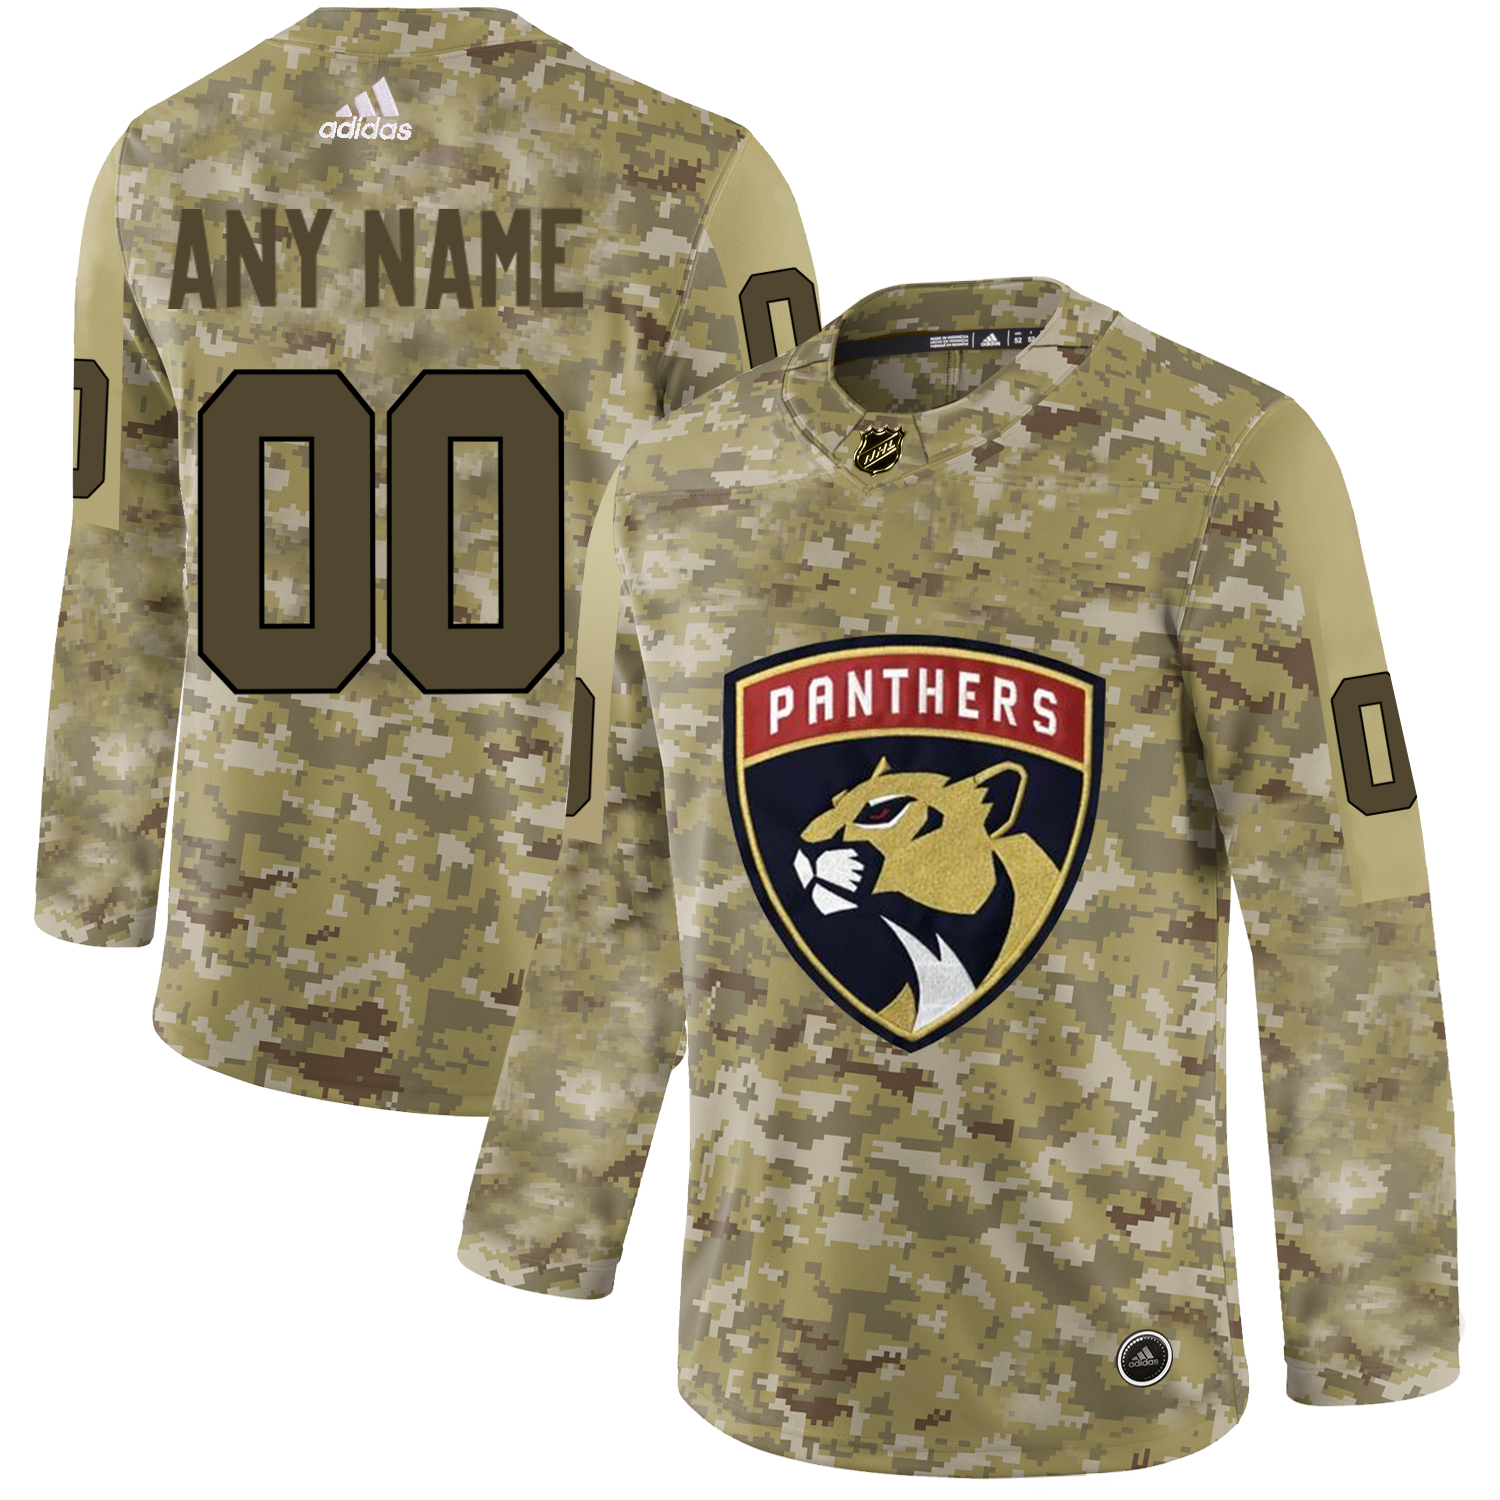 Florida Panthers Camo Men's Customized Adidas Jersey